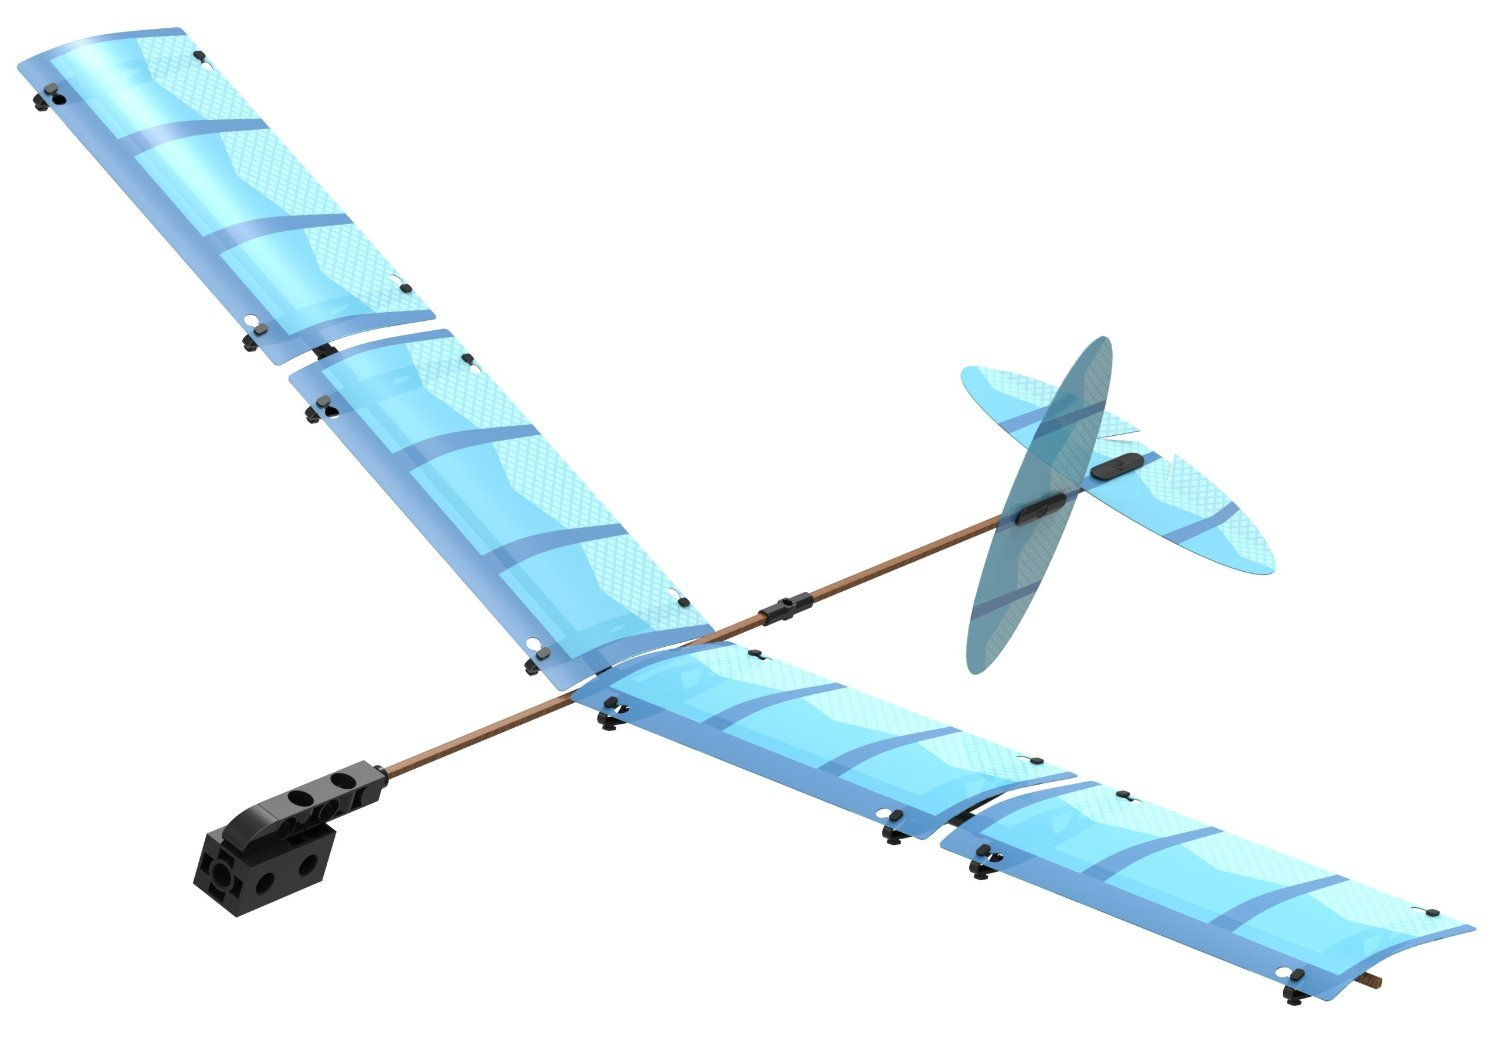 Geek & Co: Ultralight Airplanes - Project Kit image